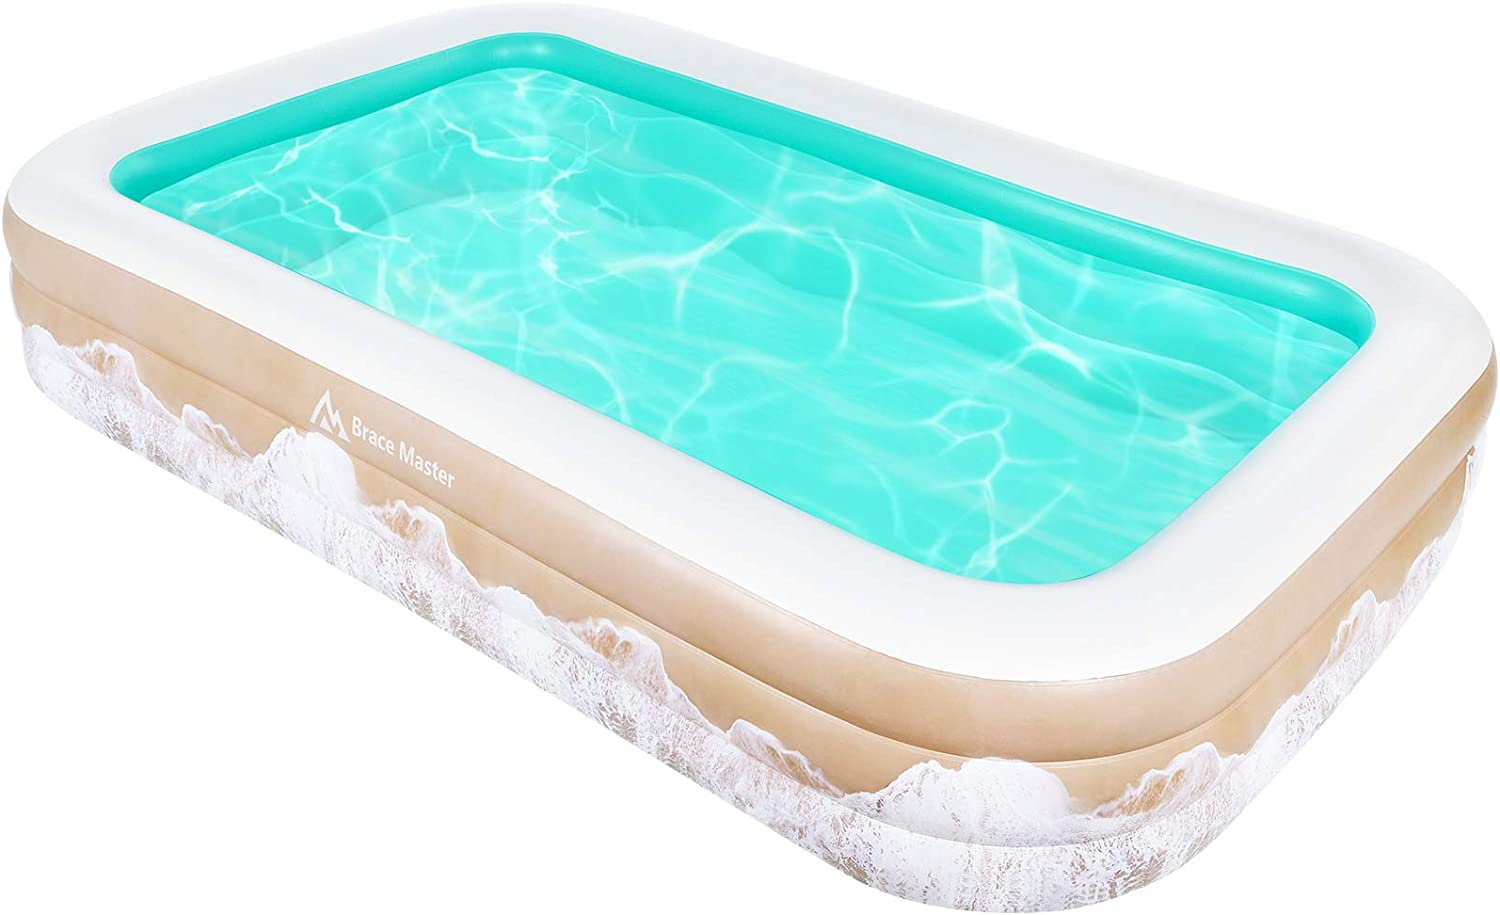 Financial sales sale Brace Master Department store Inflatable Swimming Pool Blow Up x 92